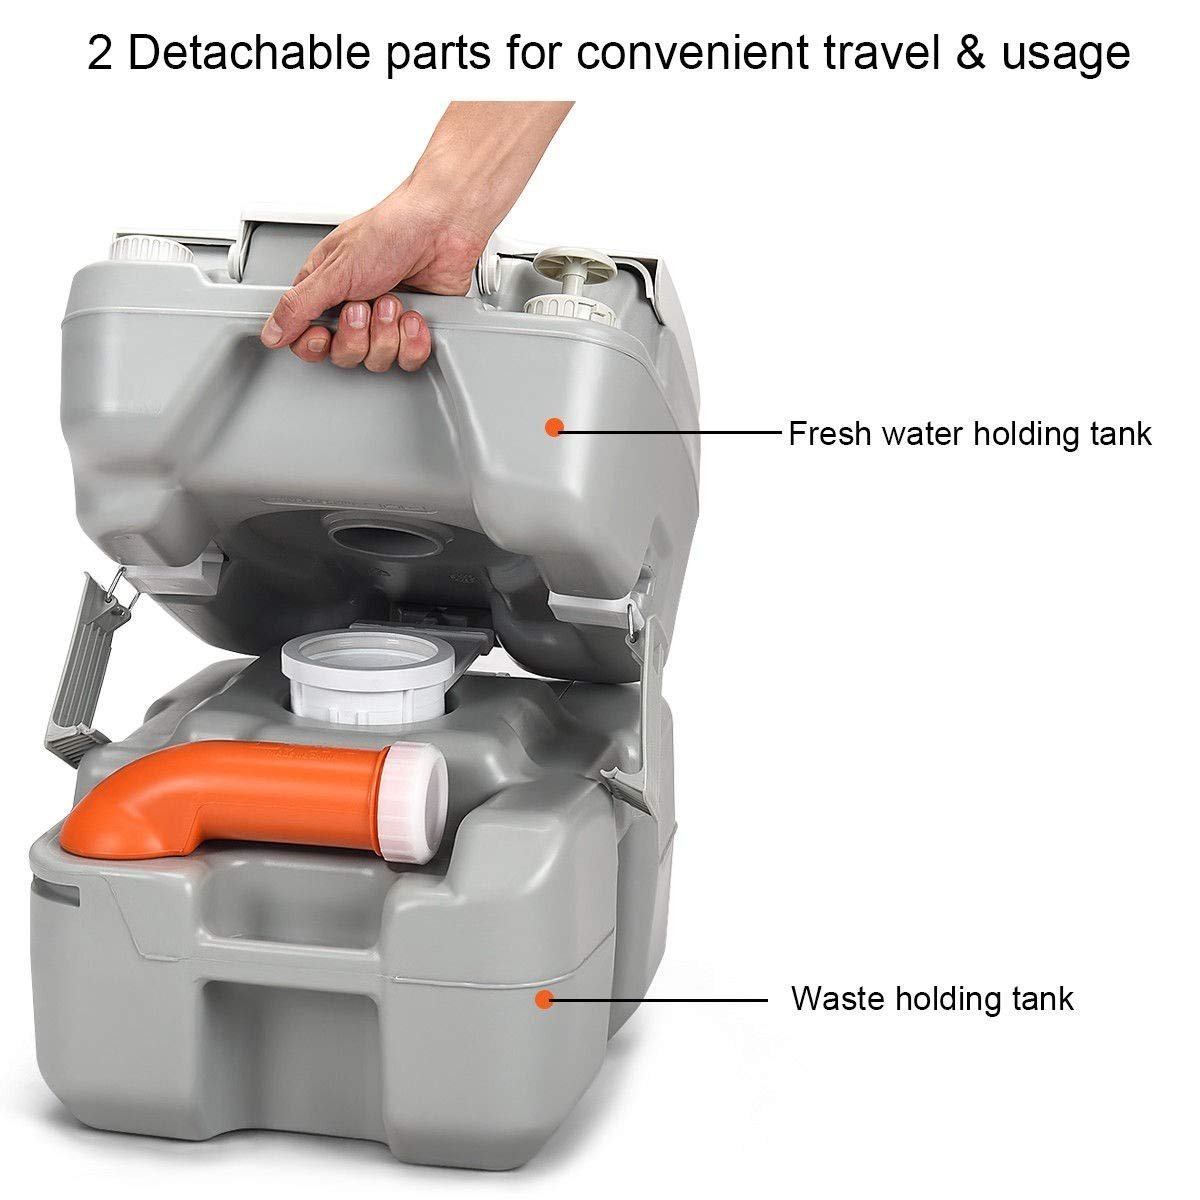 Safstar Upgraded 5.3 Gallon Portable Toilet Splash-Free Dumping, Anti-Leak Water Pump, Large Capacity Waste Tank with Level Indicator, 3 Way Pistol Flush, Rotating Spout for RV Travel Camping by S AFSTAR